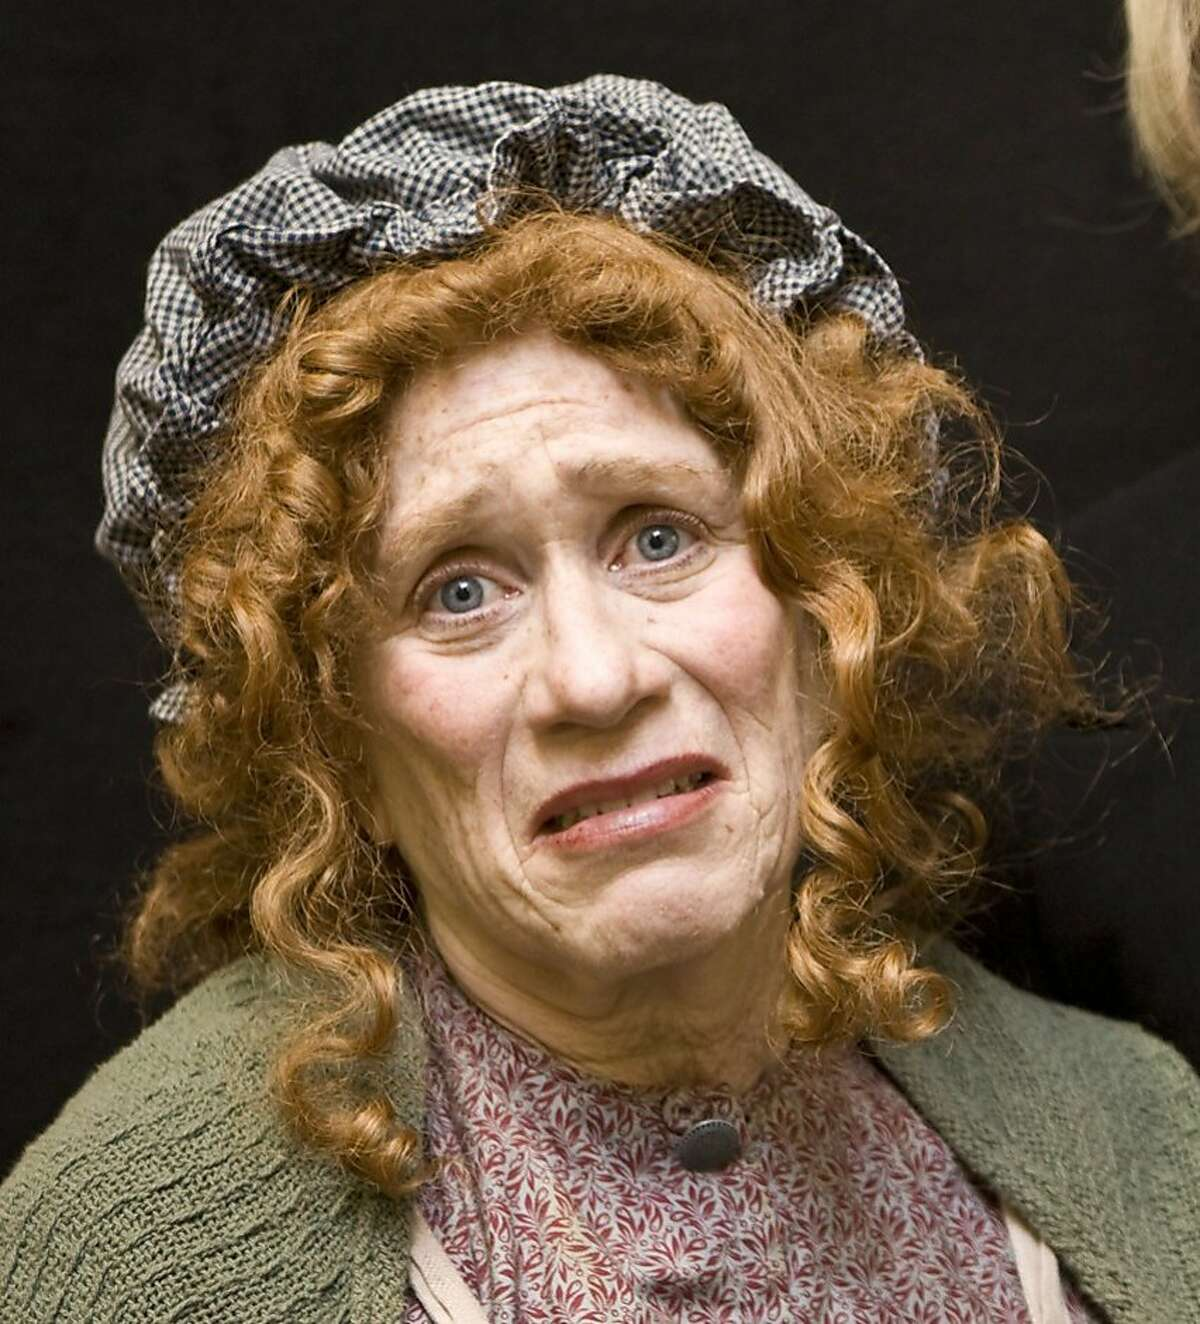 """Joan Mankin in the title role of """"Mrs. Bob Cratchit's Wild Christmas Ride"""" at San Francisco Playhouse in 2007"""